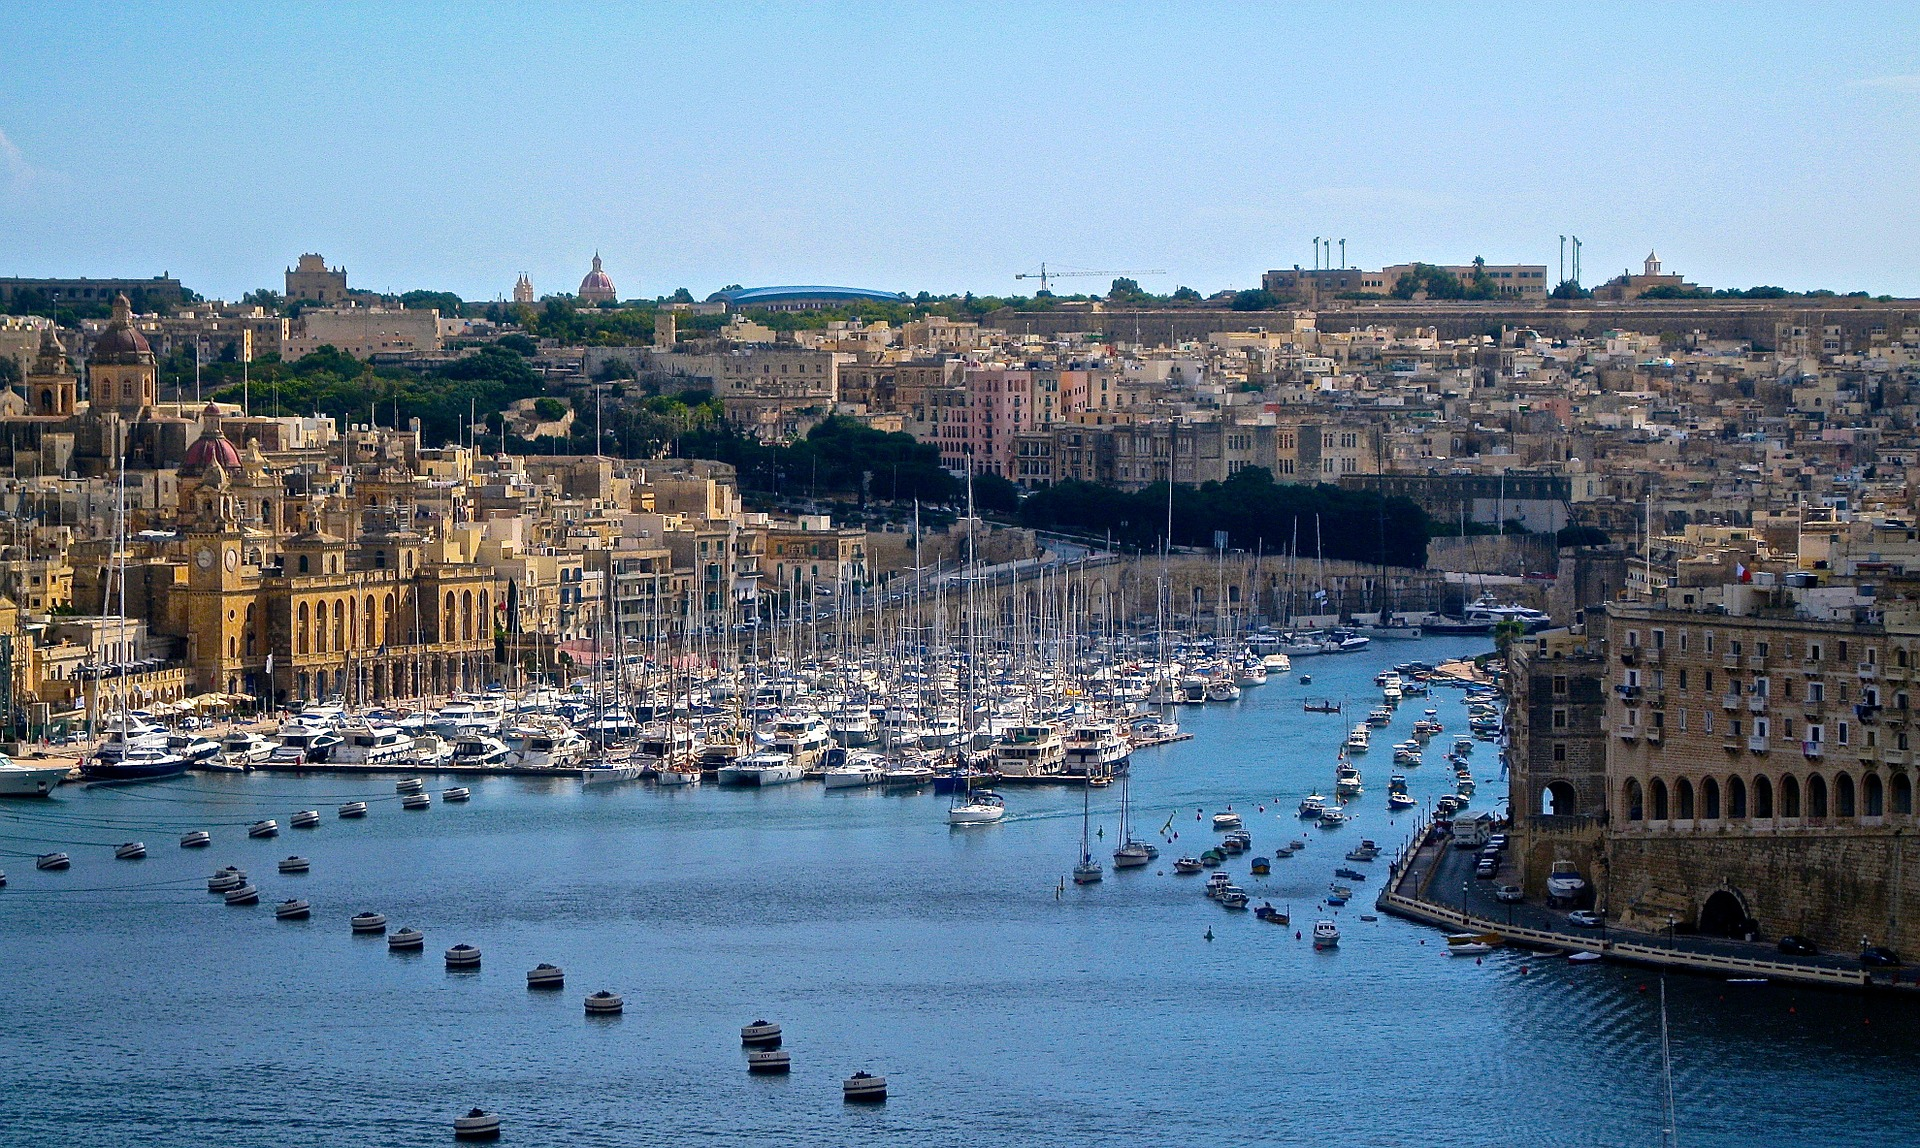 Malta is an attractive destination for sailing and scuba diving.